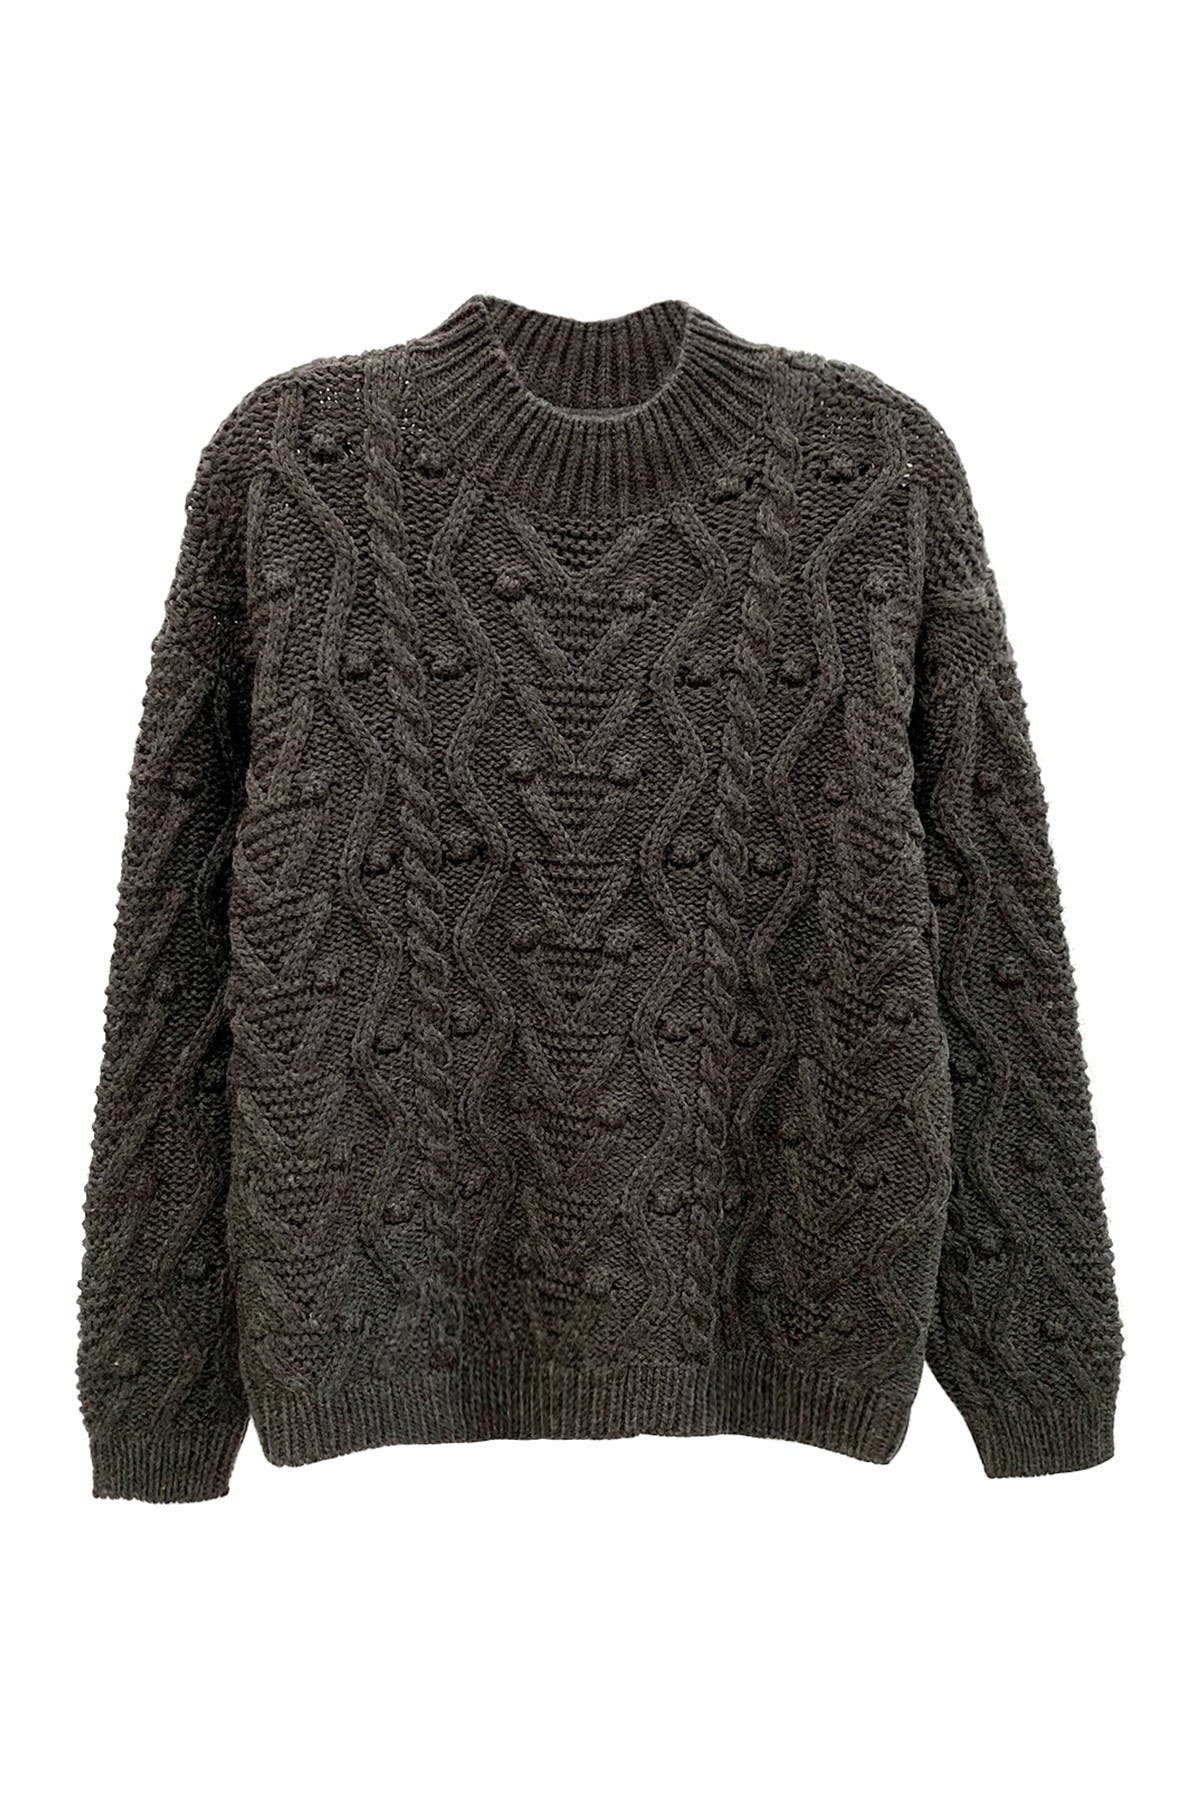 Image of Cloth By Design Mock Neck Cable Pullover